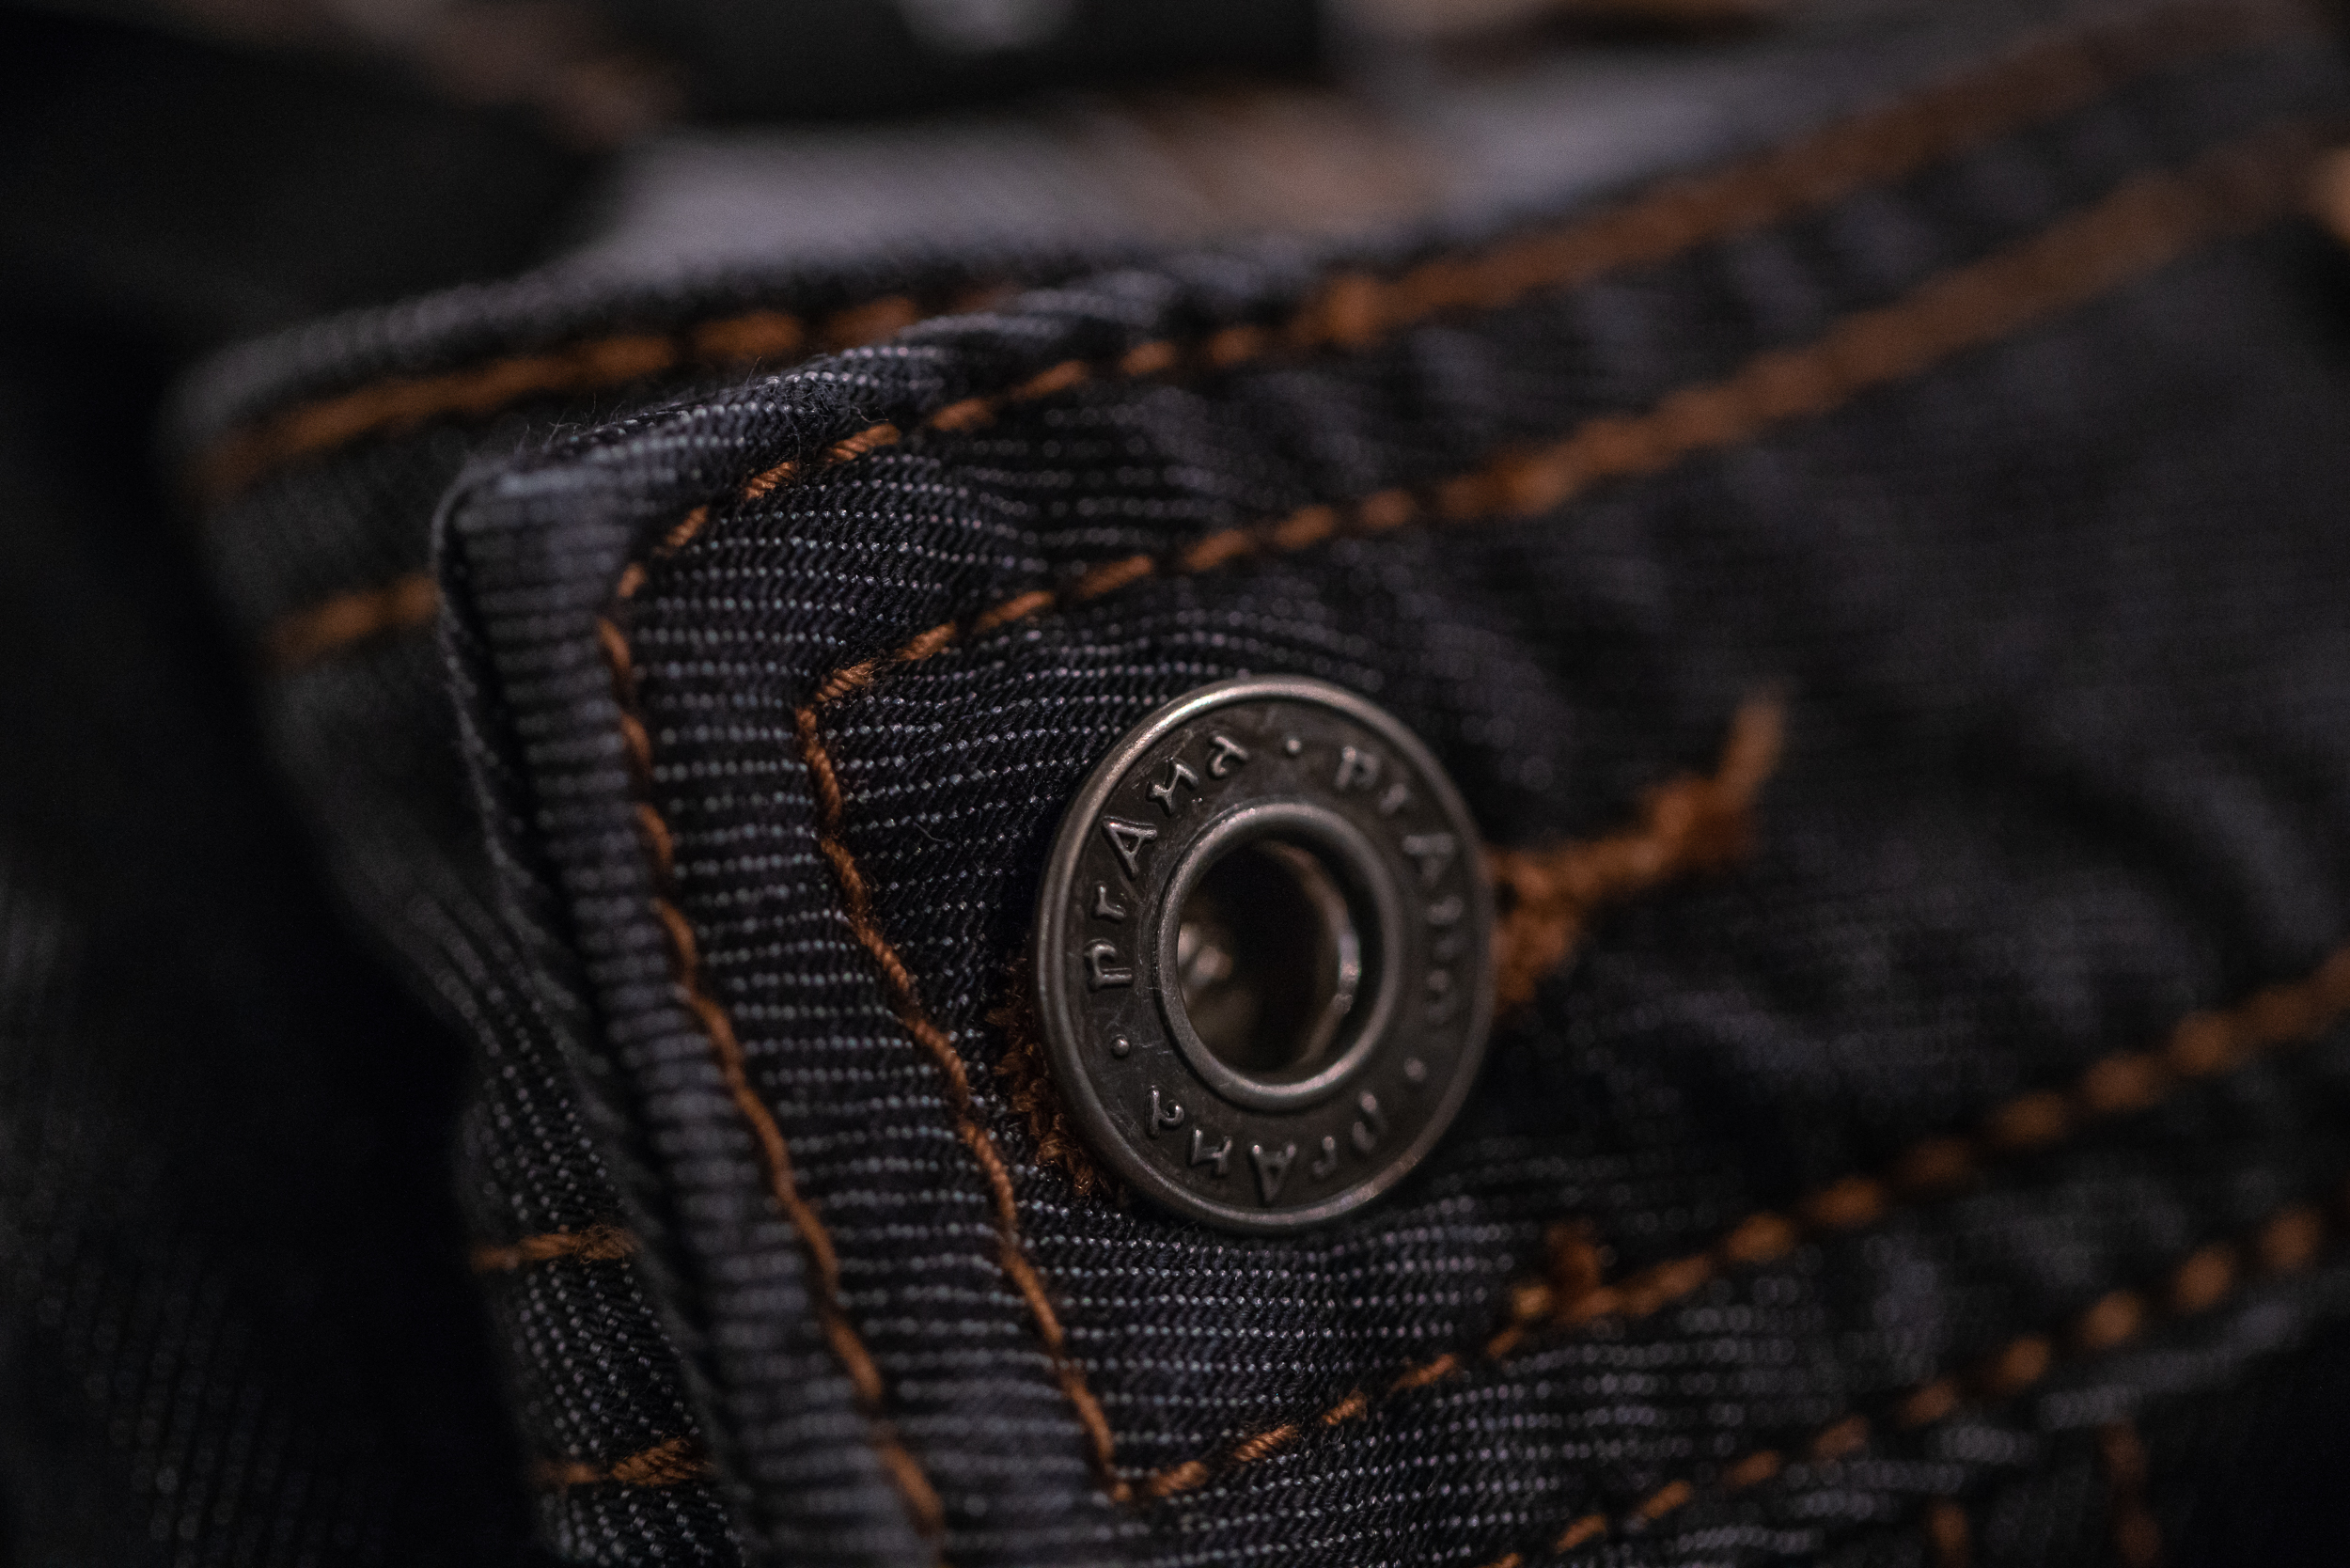 MaterialRevolution_KrisKish-34.jpg